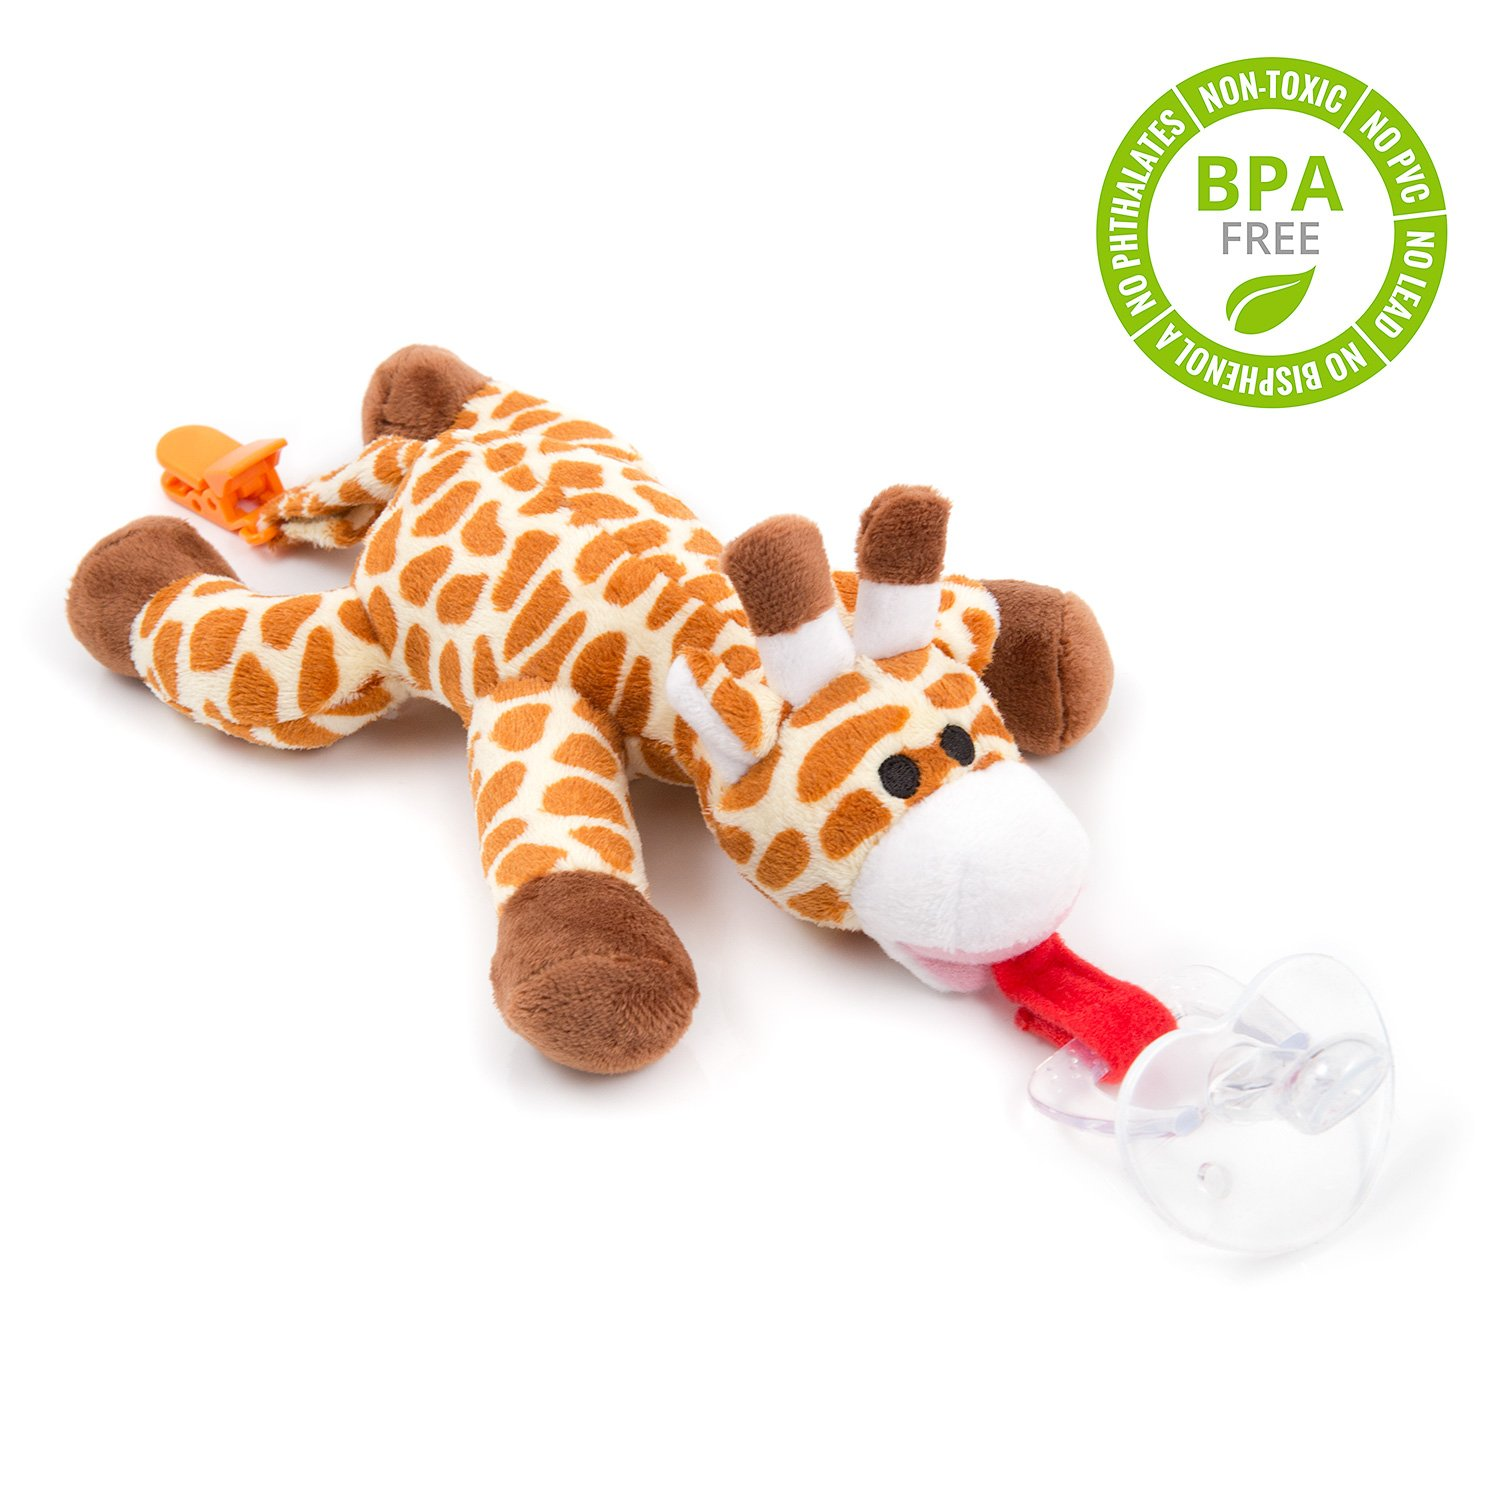 Baby Giraffe Teething Toy And More Newborn Gifts